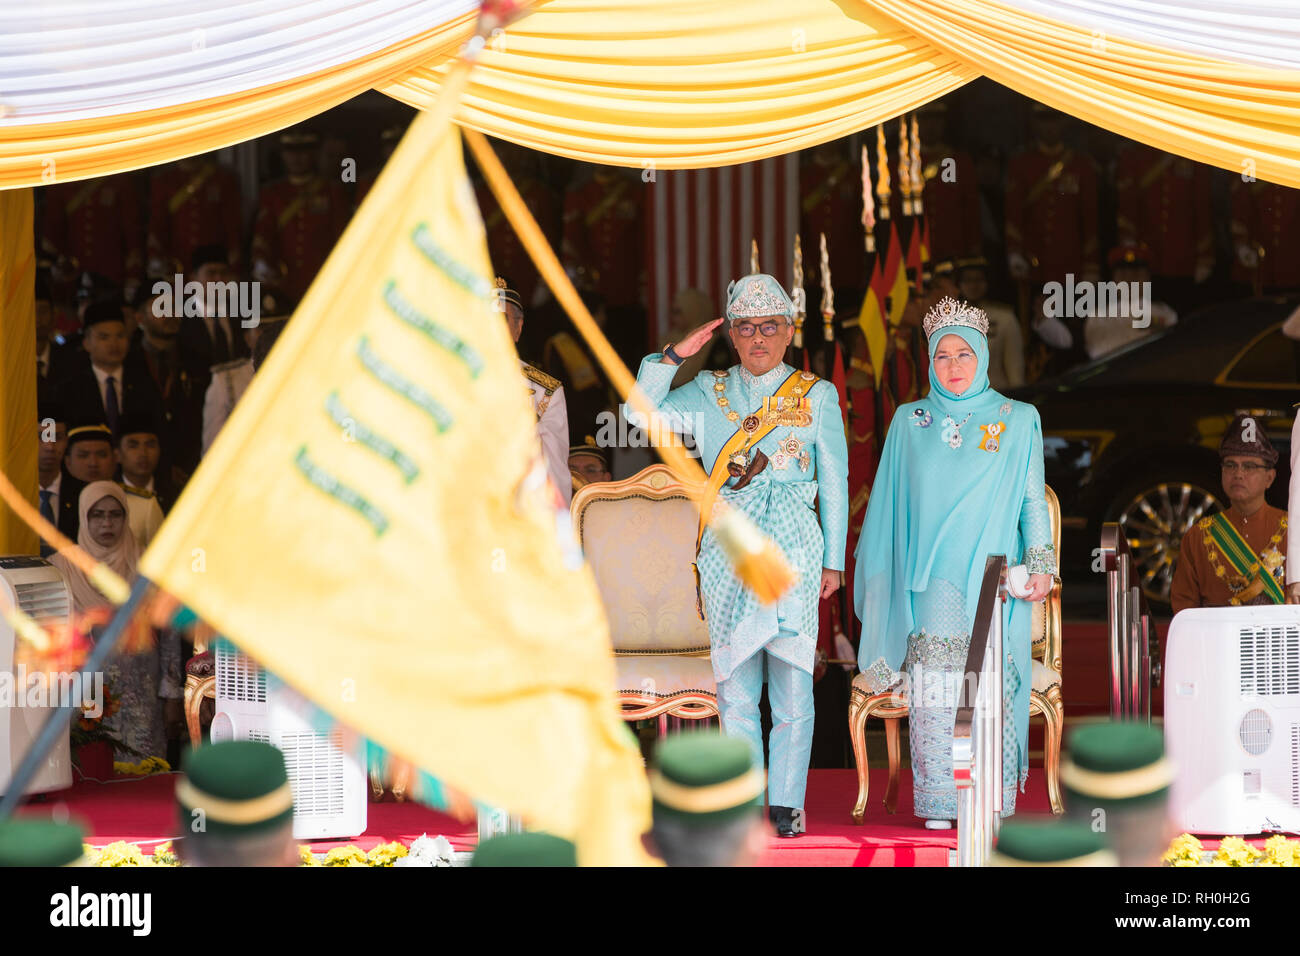 Kuala Lumpur, Malaysia. 31st Jan, 2019. Sultan Abdullah Sultan Ahmad Shah (L) attends the welcome ceremony at the parliament square in Kuala Lumpur, Malaysia, Jan. 31, 2019. Sultan Abdullah Sultan Ahmad Shah was sworn in as Malaysia's 16th king in a ceremony at the national palace on Thursday. Malaysia is a constitutional monarchy, with nine sultans or rulers, who head their respective state and act as the religious leader, taking turns to serve as the king for a five-year term. Credit: Zhu Wei/Xinhua/Alamy Live News - Stock Image